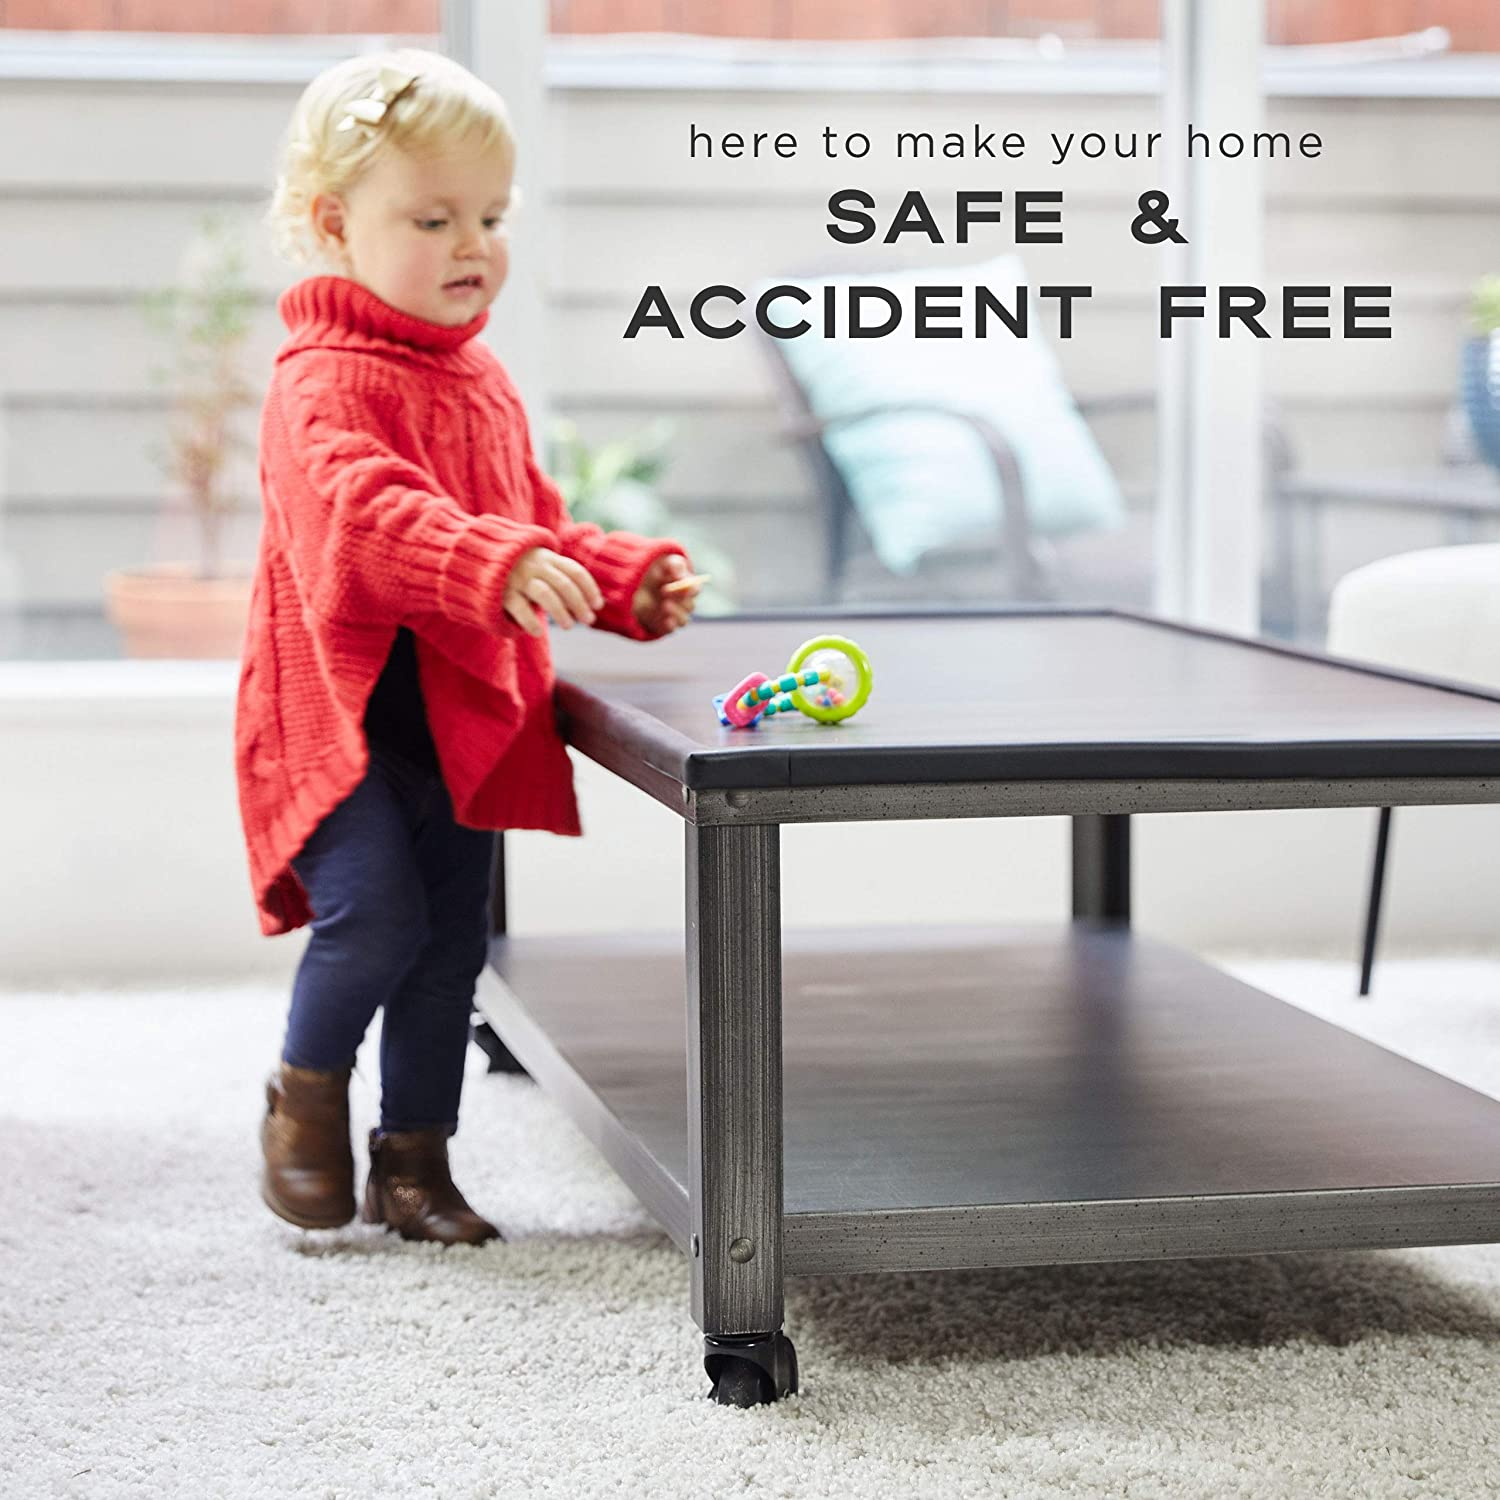 16.4 feet and 4 Corners, Onyx Black Child Proof Furniture and Tables Pre-Taped Bumper Corners Bebe Earth Safety Bumpers Baby Proofing Edge and Corner Guard Protector Set